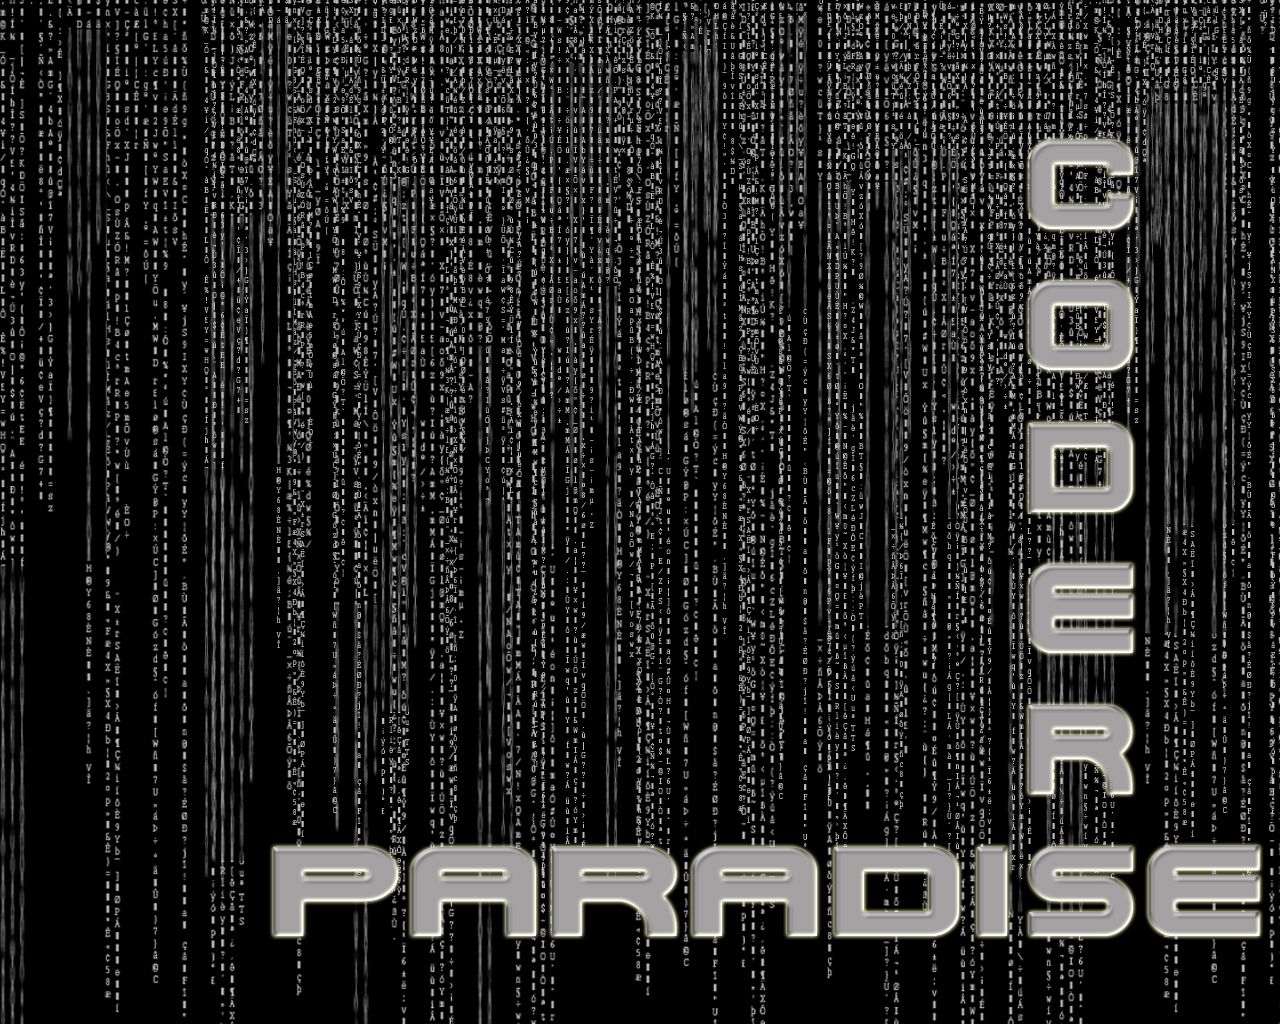 coders paradise for jaime